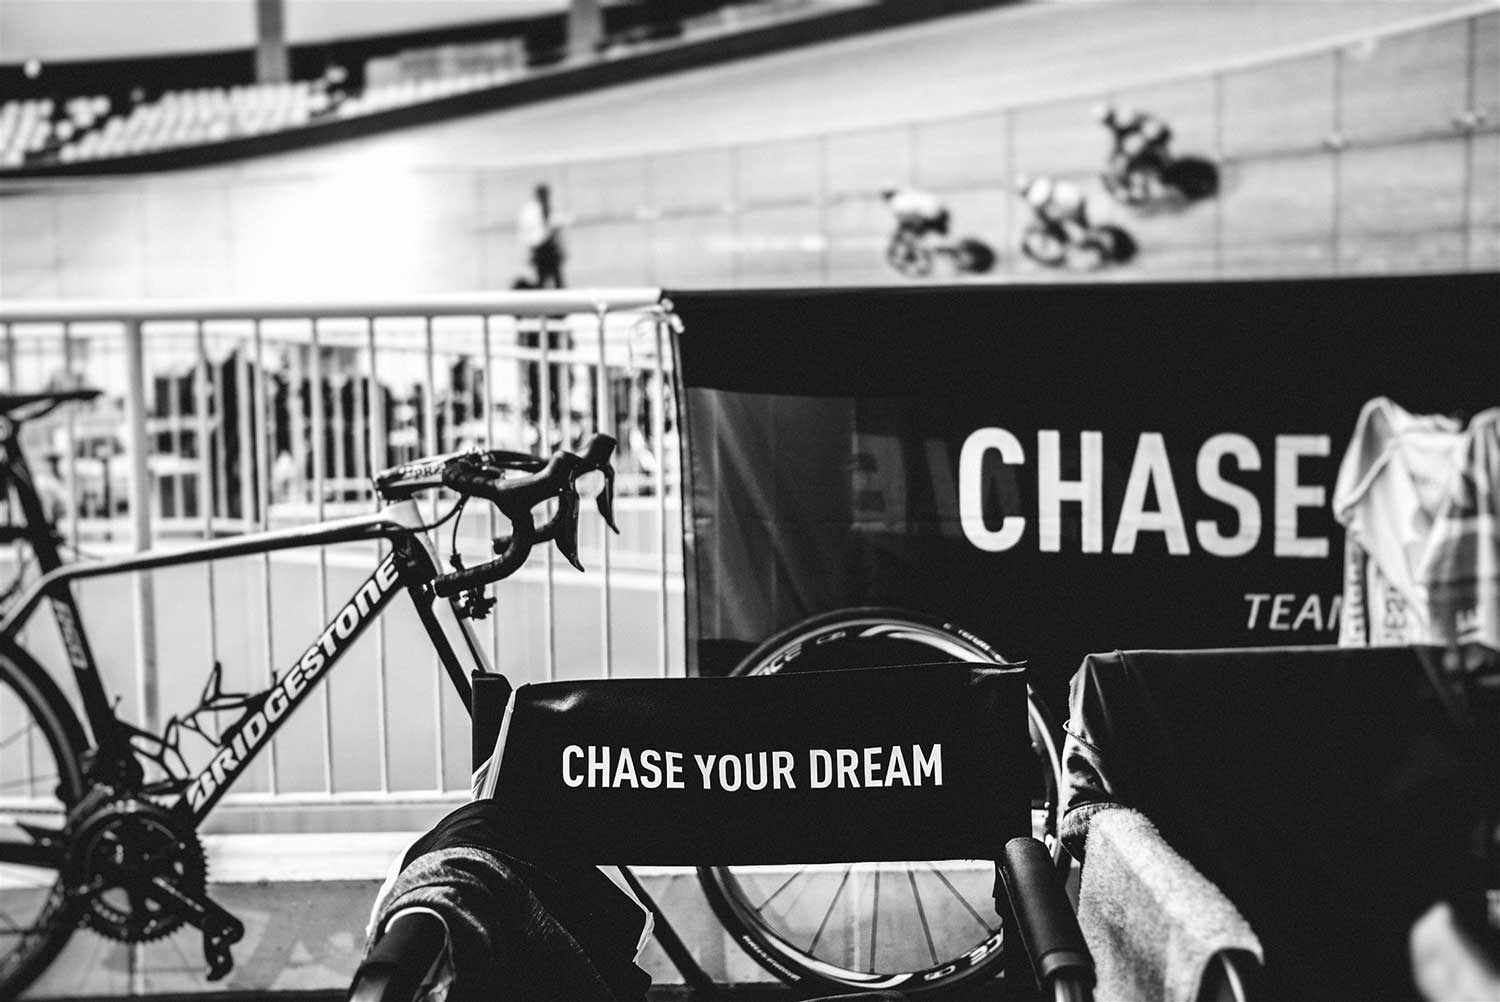 Empty seat with Chase Your Dream written on it to motivate cyclists during National Keirin Championships at Izu Velodrome